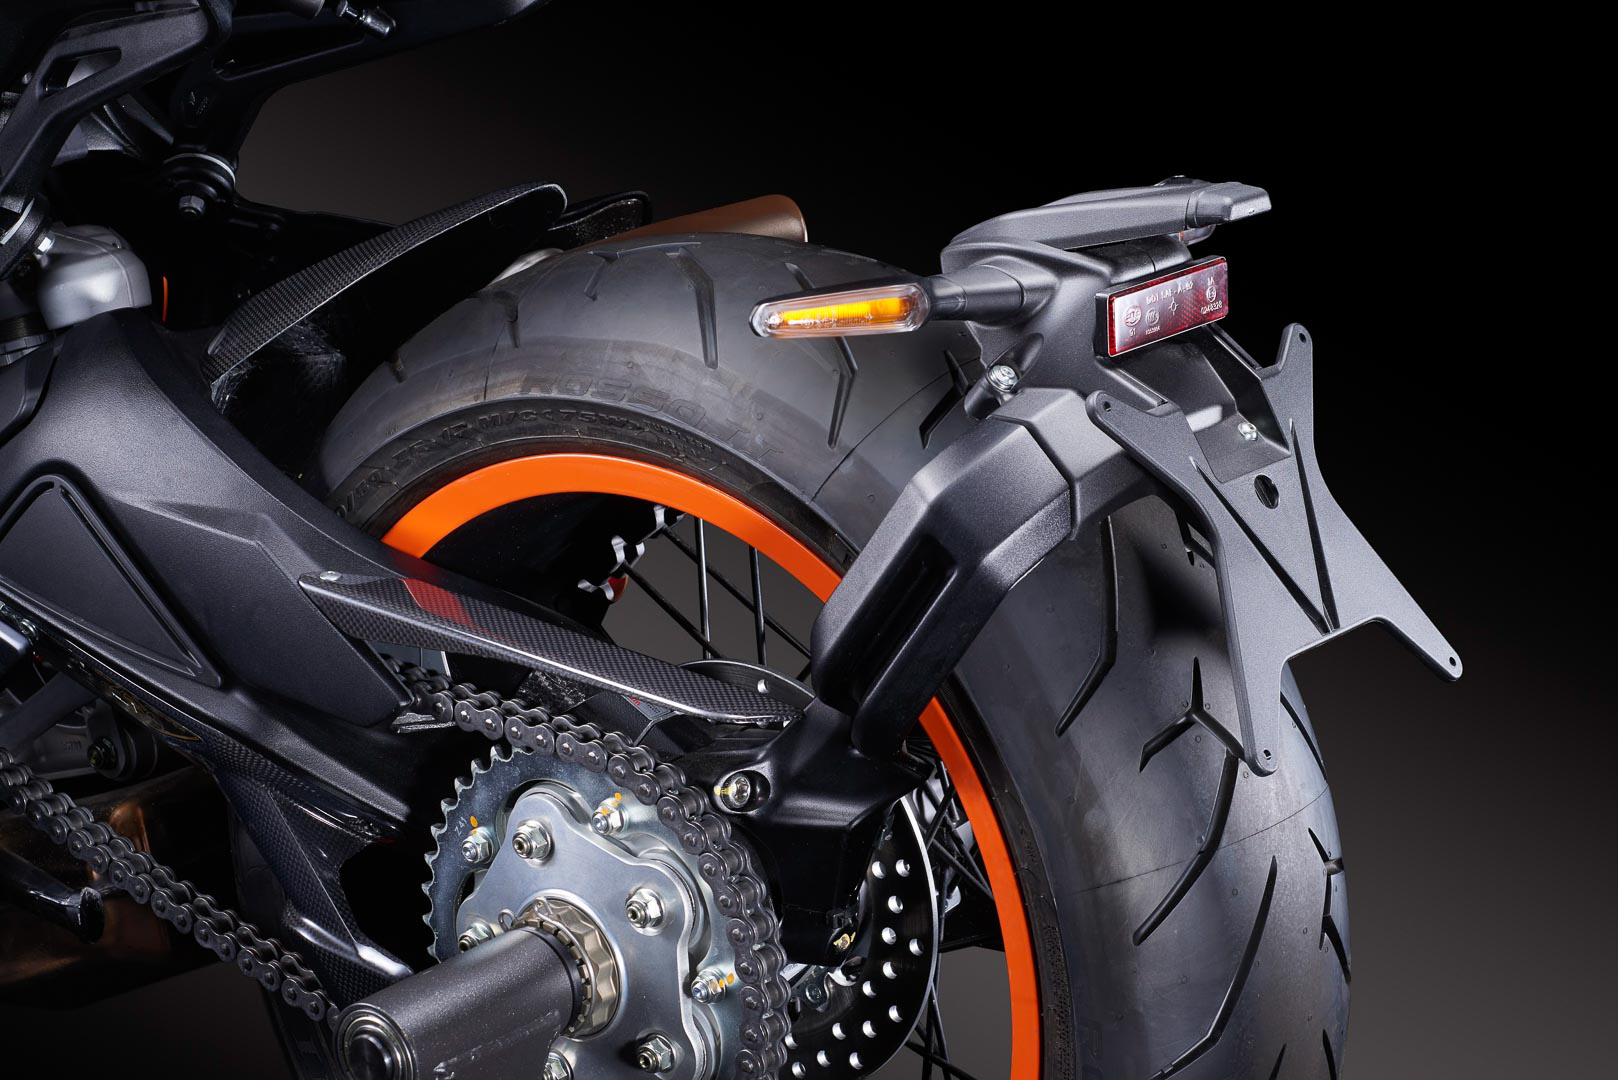 2020 TheArsenale x MV Agusta Dragster 800 RR First Look custom sport motorcycle 2